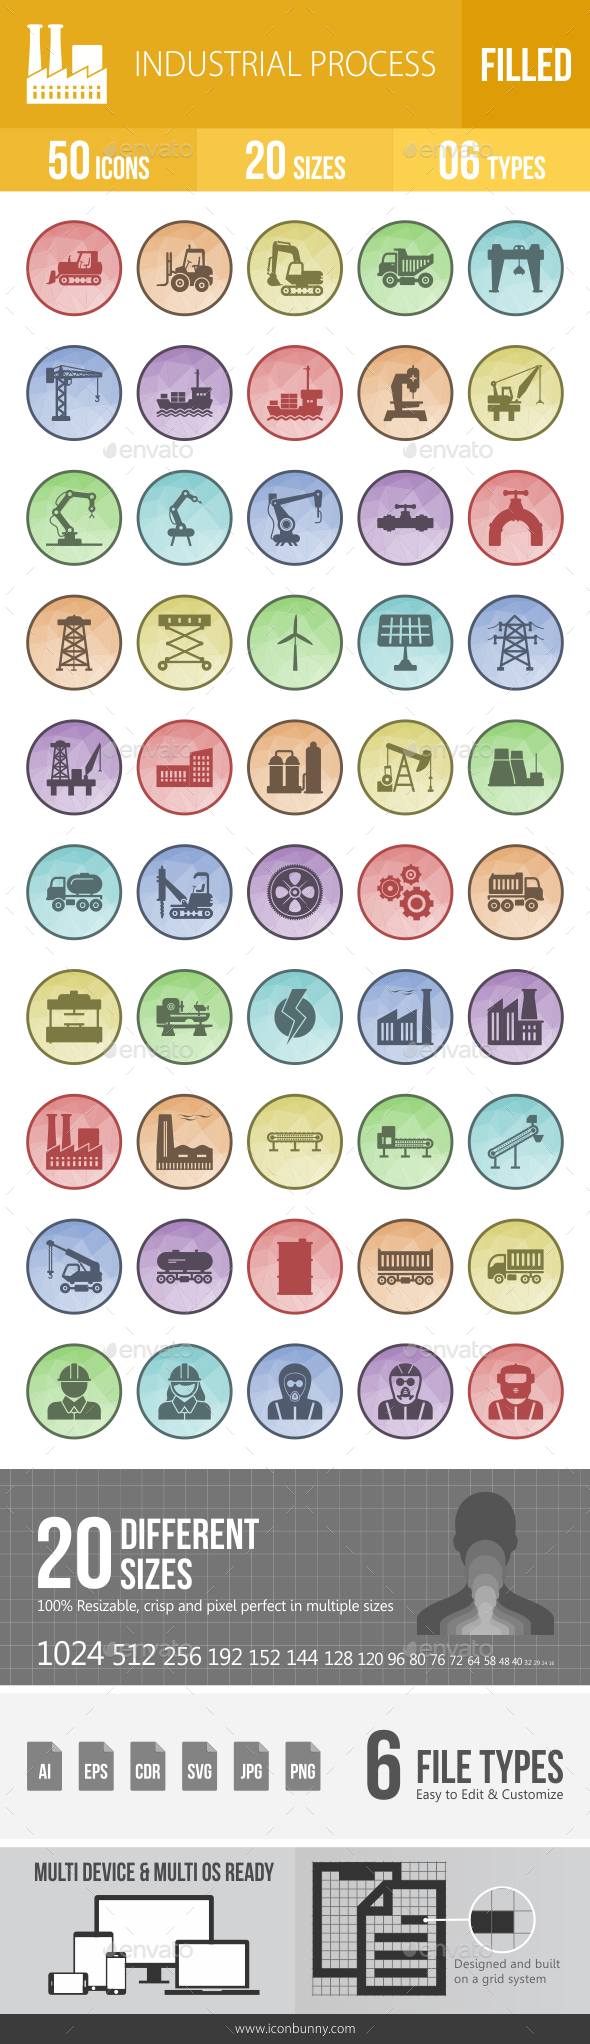 GraphicRiver 50 Industrial Process Filled Low Poly Icons 21153032